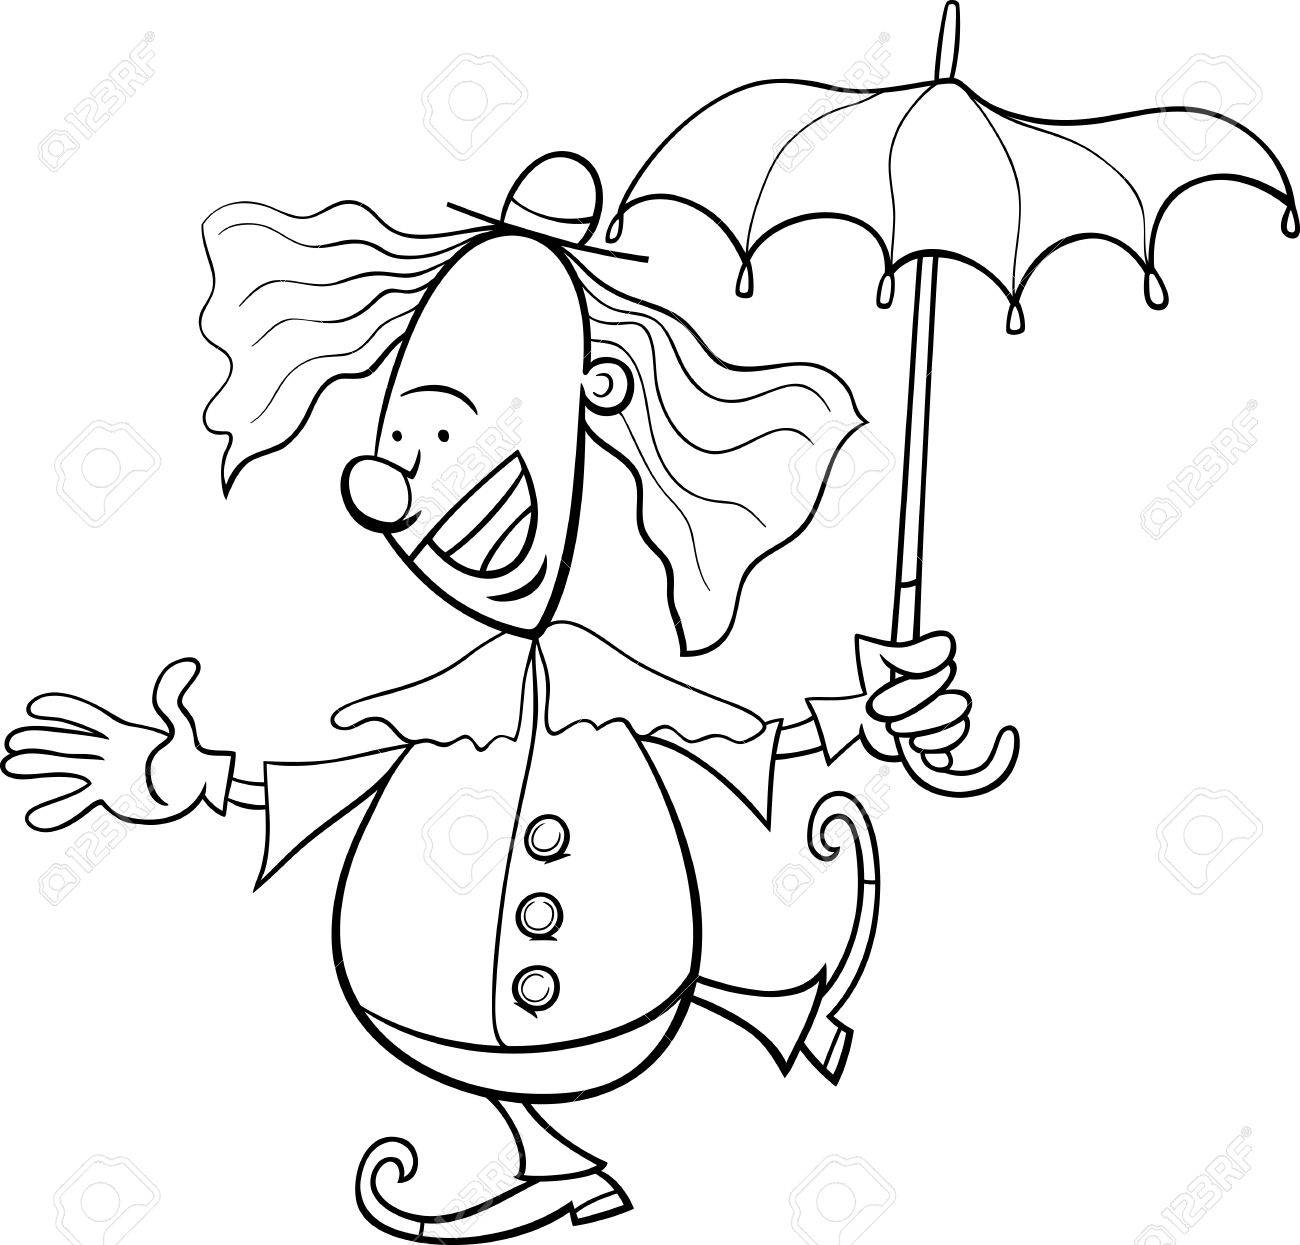 Black And White Cartoon Illustration Of Funny Clown Circus Performer With Umbrella For Coloring Book Stock